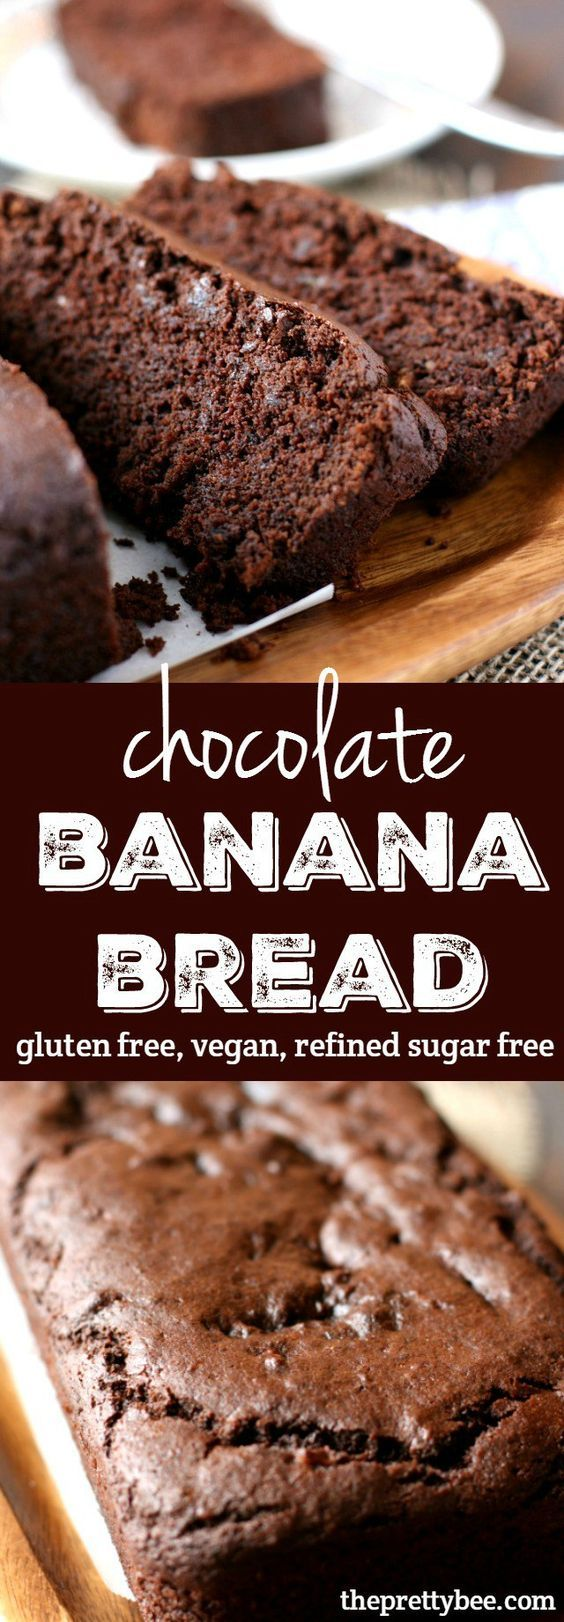 Chocolate Banana Bread (Gluten Free, Vegan, Refined Sugar Free). More